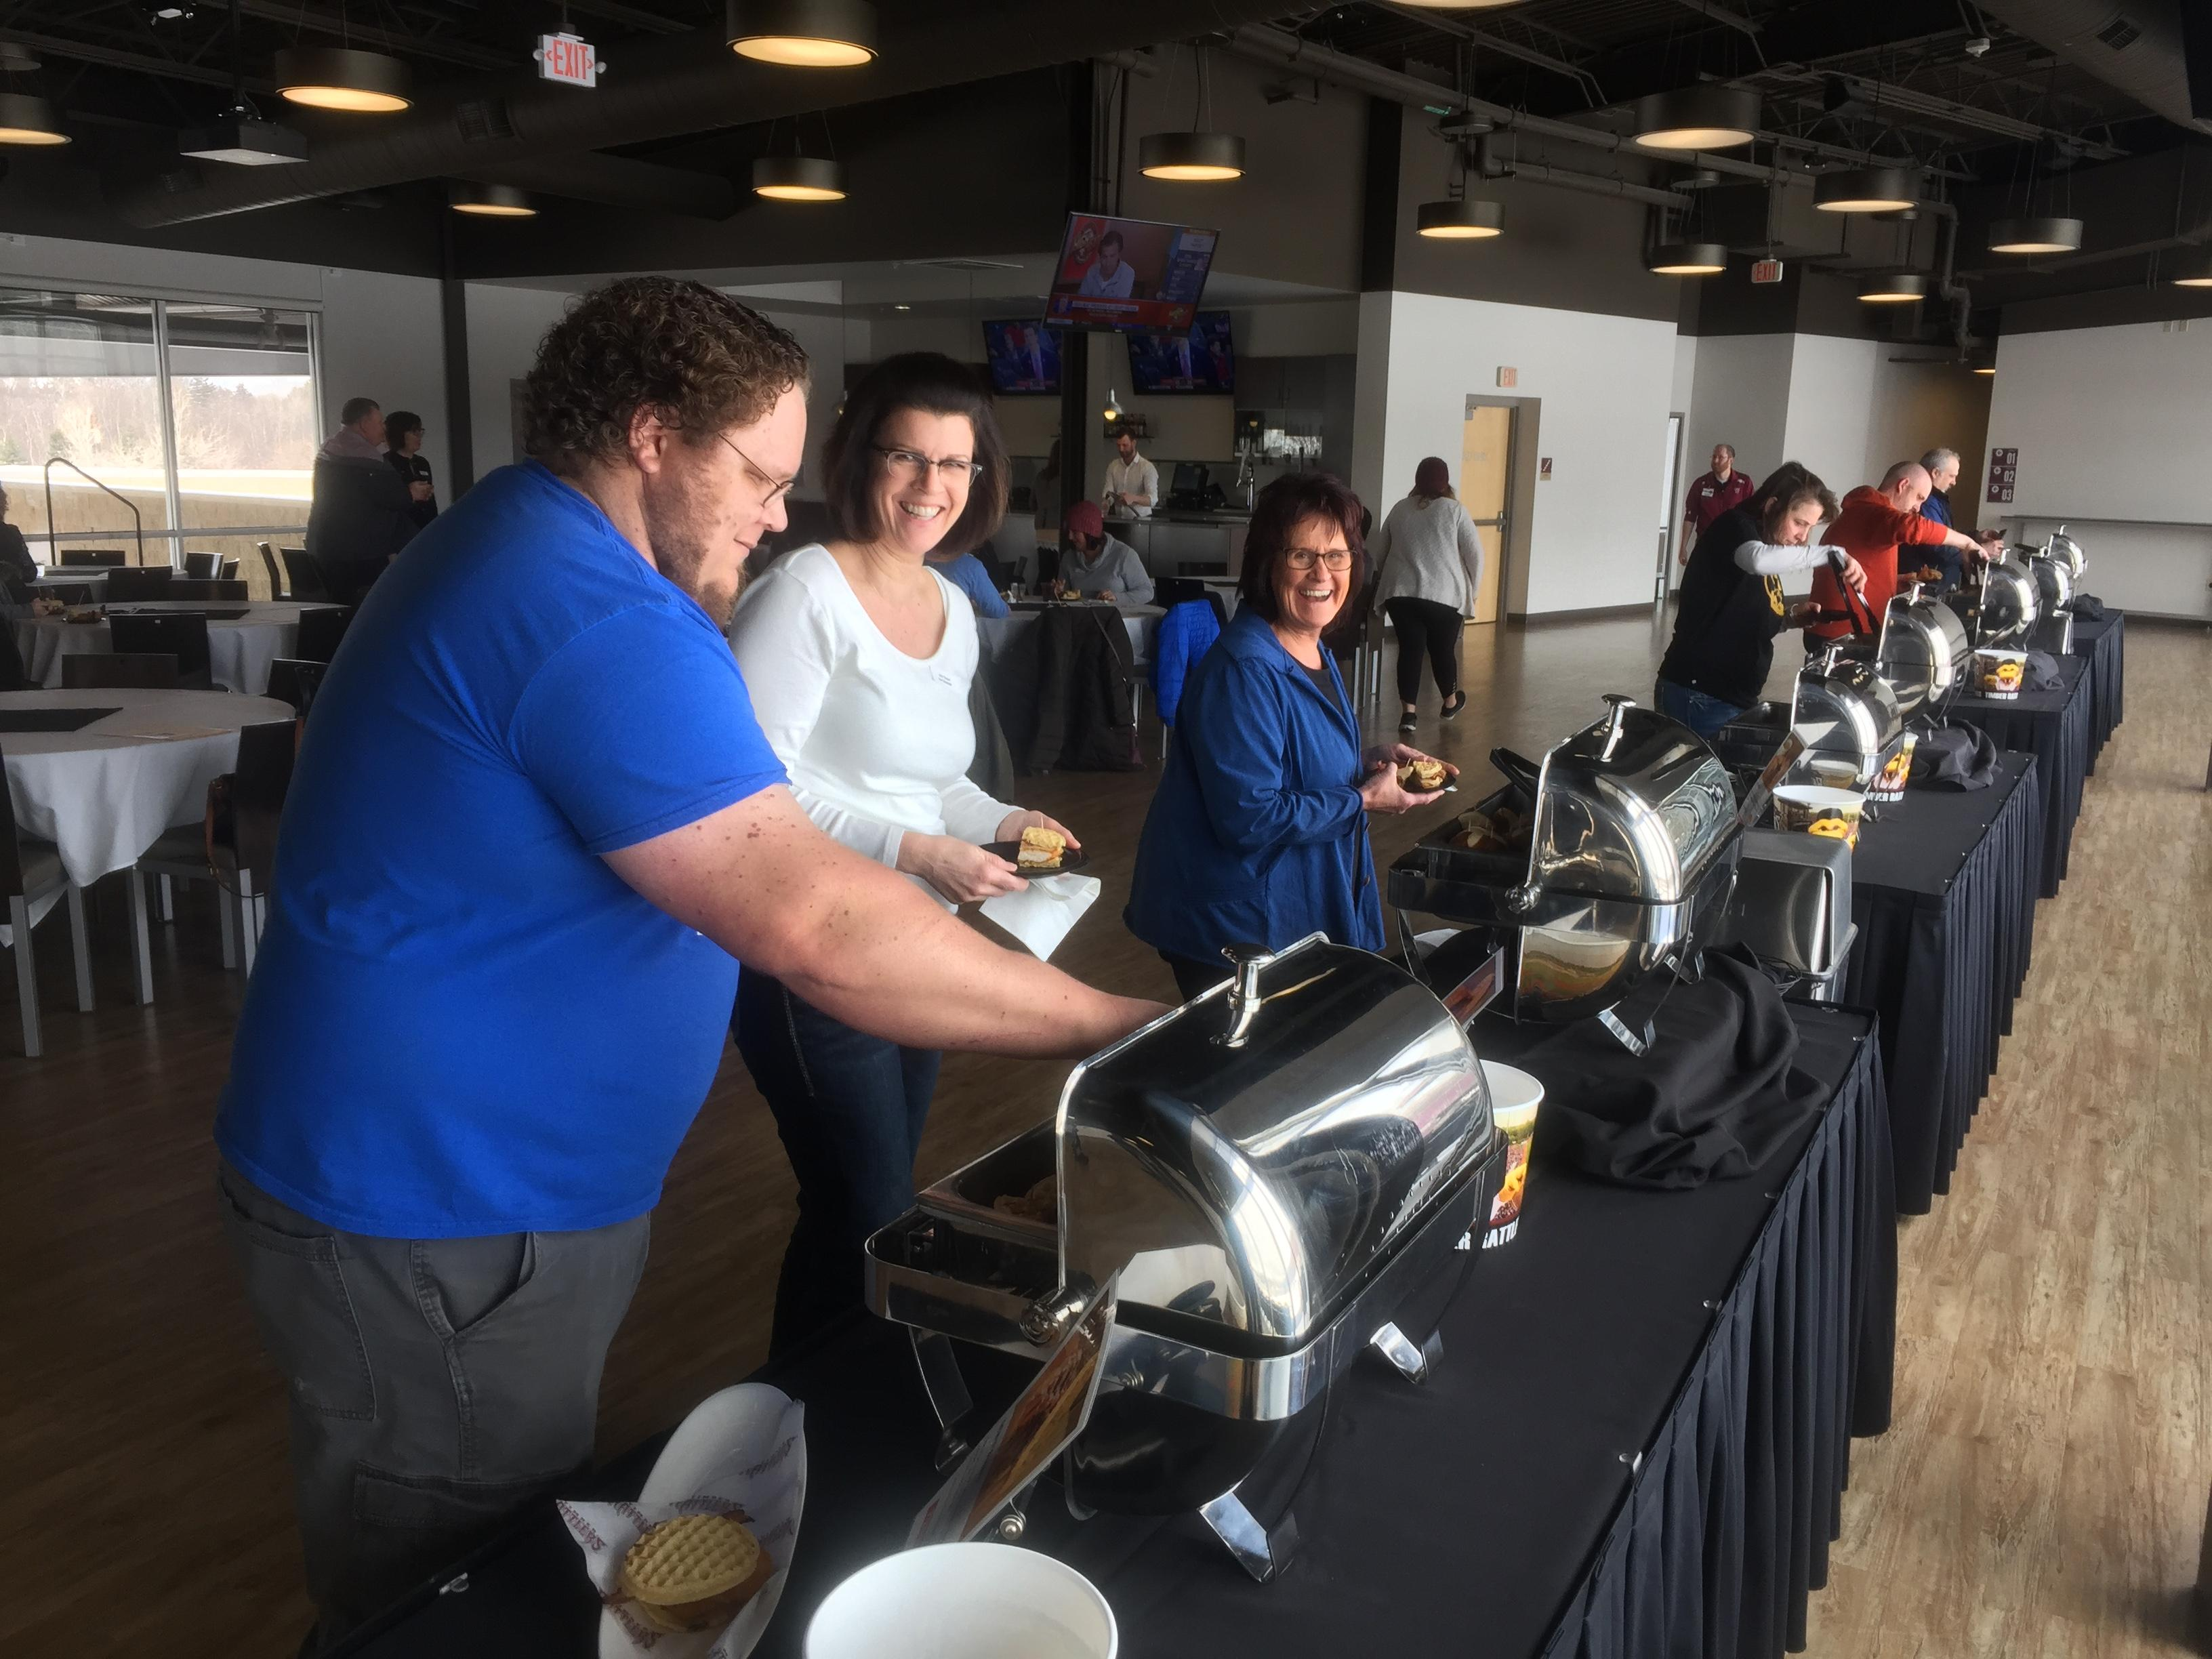 Timber Rattlers host &quot;Food Fight Tasting&quot; at Fox Cities Stadium in Grand Chute, March 7, 2018. (WLUK)<p></p>